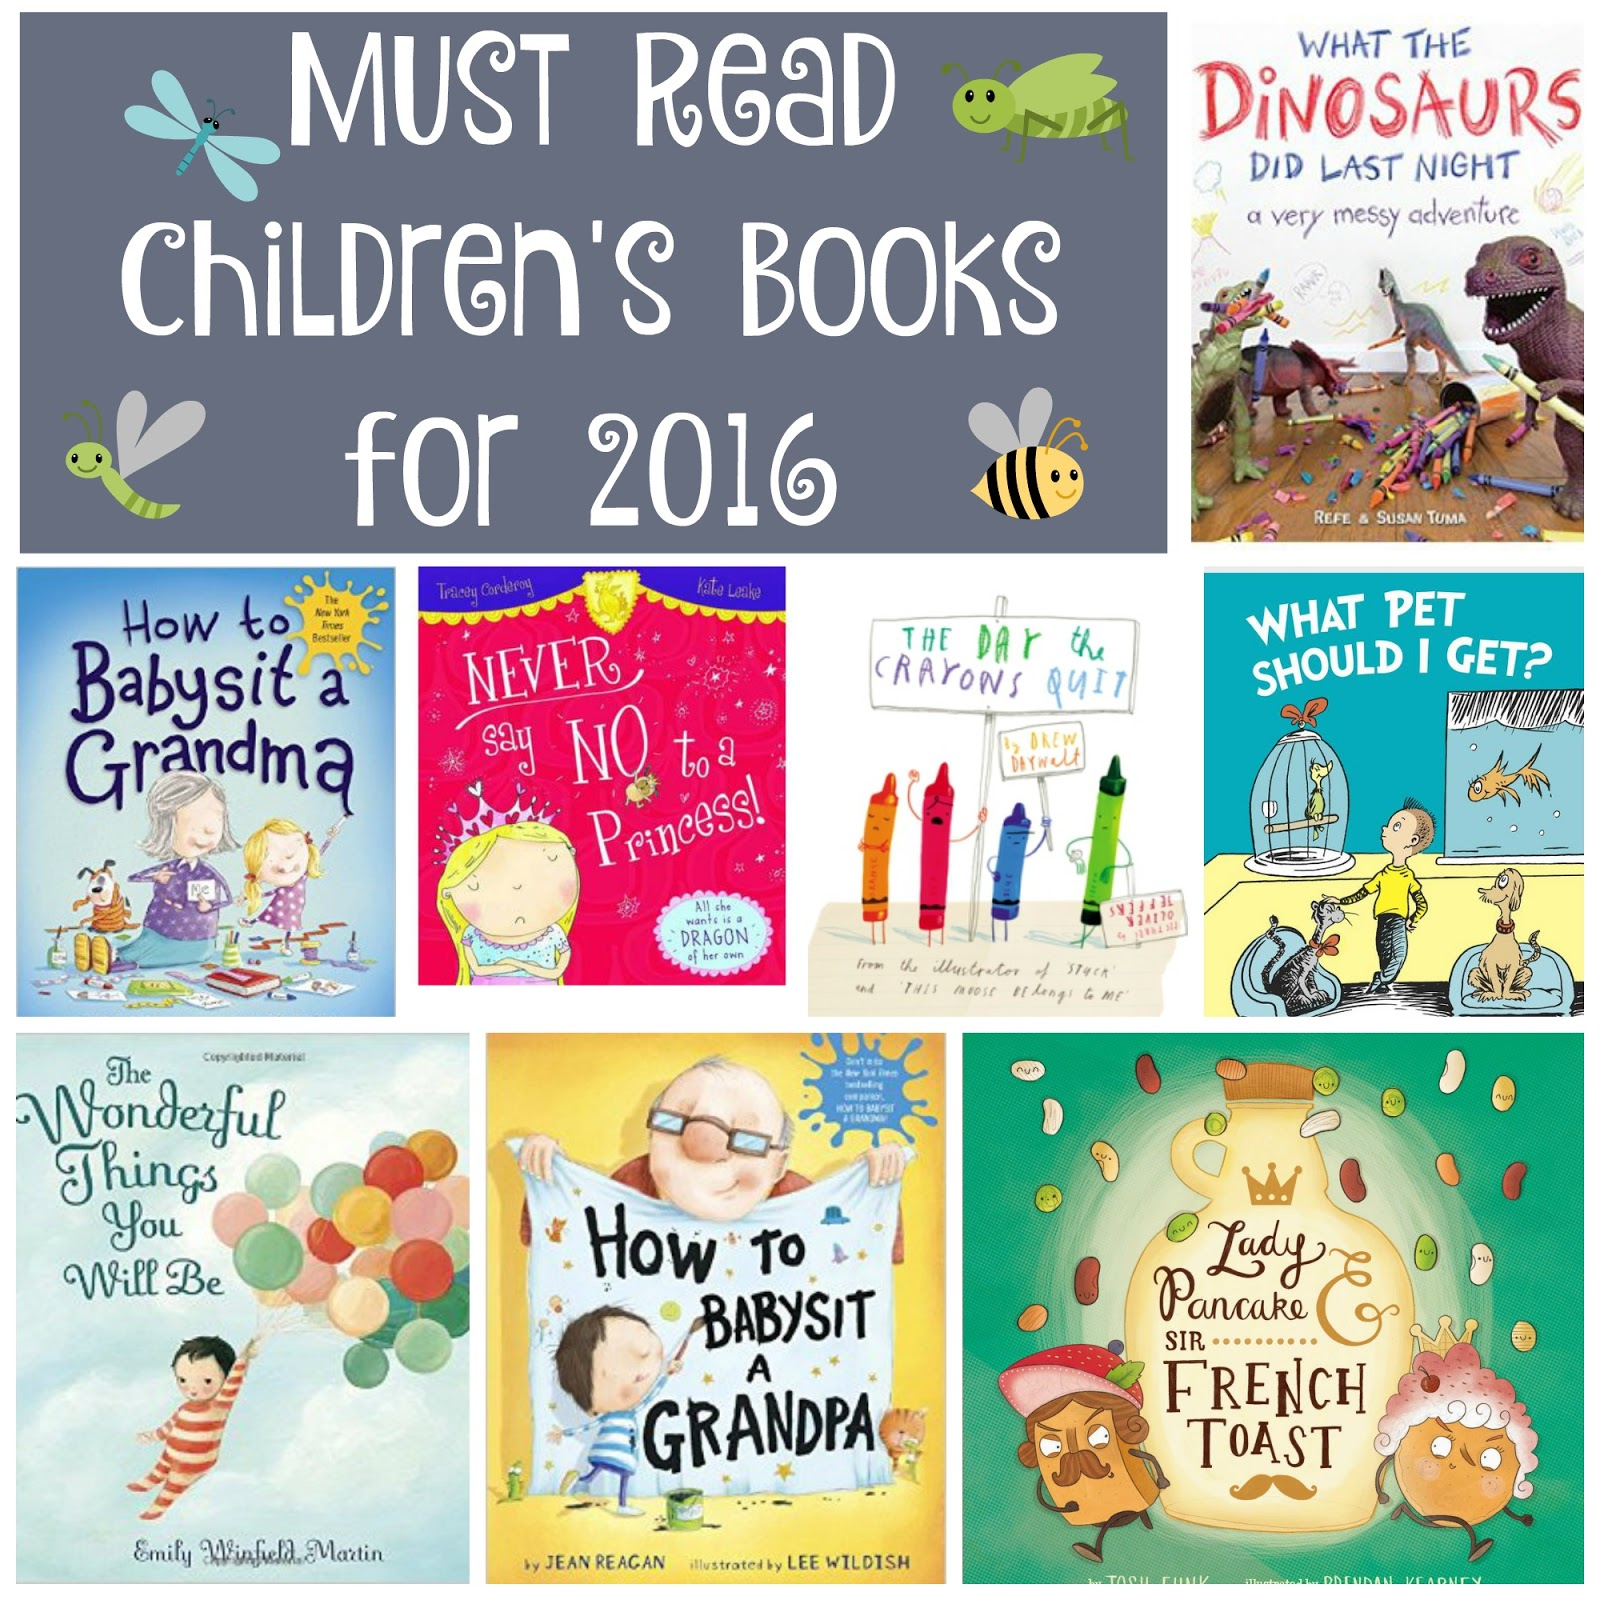 Must Read Children's Books for 2016 |Building Our Story